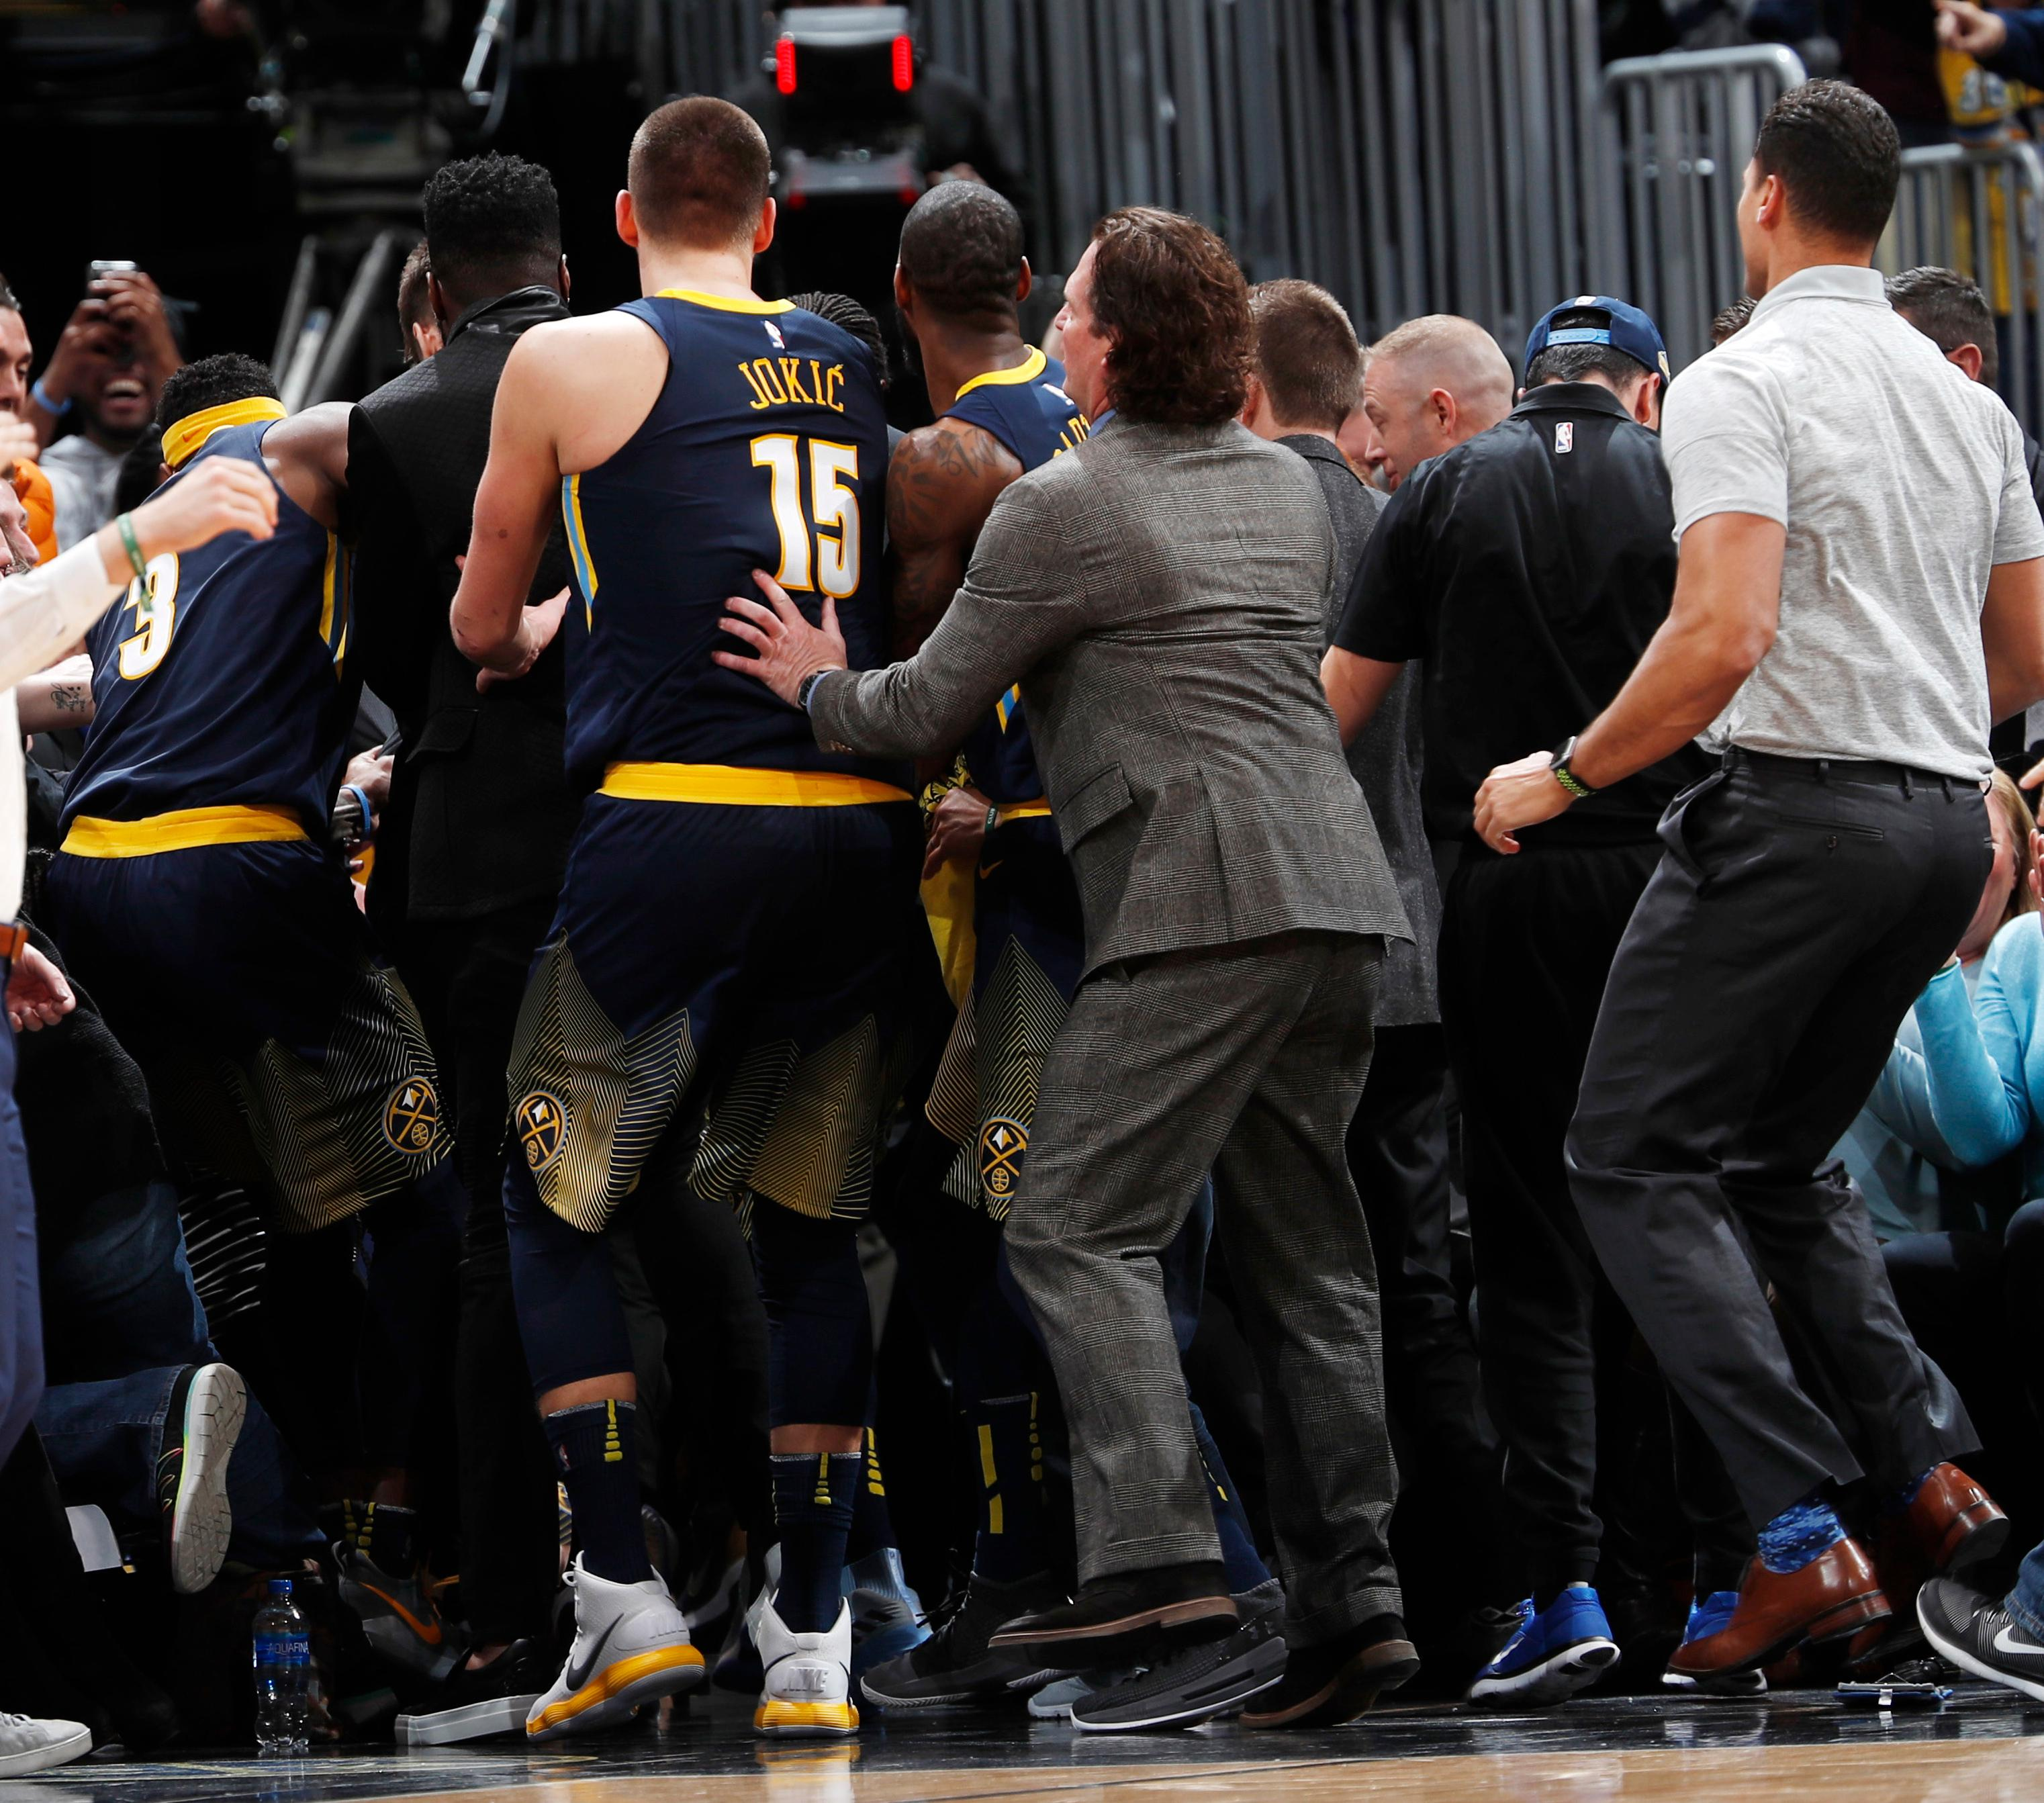 Members of the Denver Nuggets surround guard Gary Harris after he hit a 3-point basket at the final buzzer in the team's NBA basketball game against the Oklahoma City Thunder on Thursday, Feb. 1, 2018, in Denver. The Nuggets won 127-124. (AP Photo/David Zalubowski)